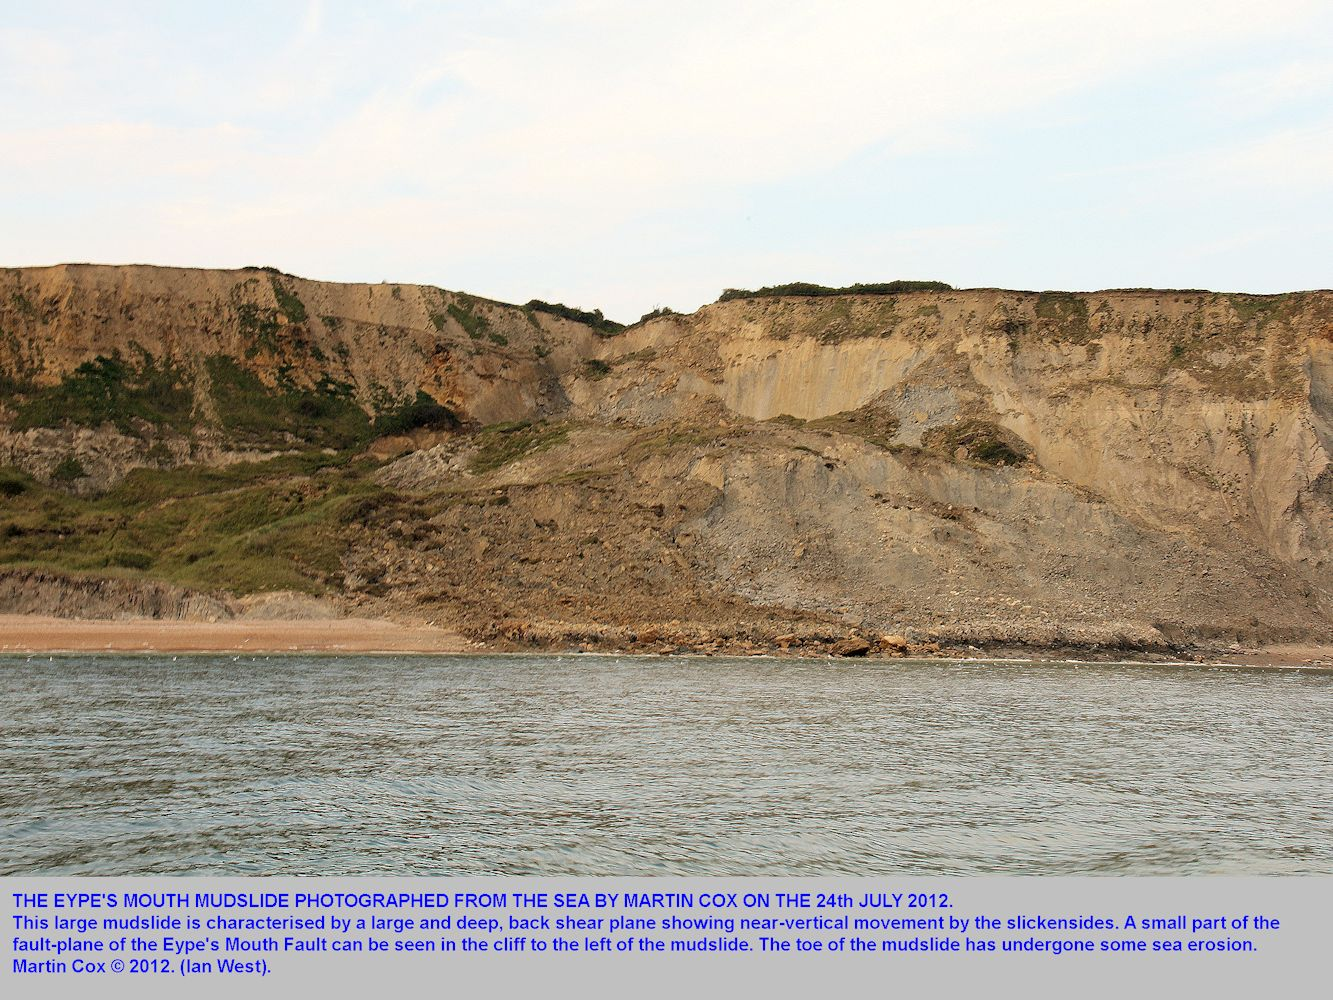 The large mudslide at Eype's Mouth, near Bridport, Dorset, photographed from the sea by Martin Cox, 24th July 2012